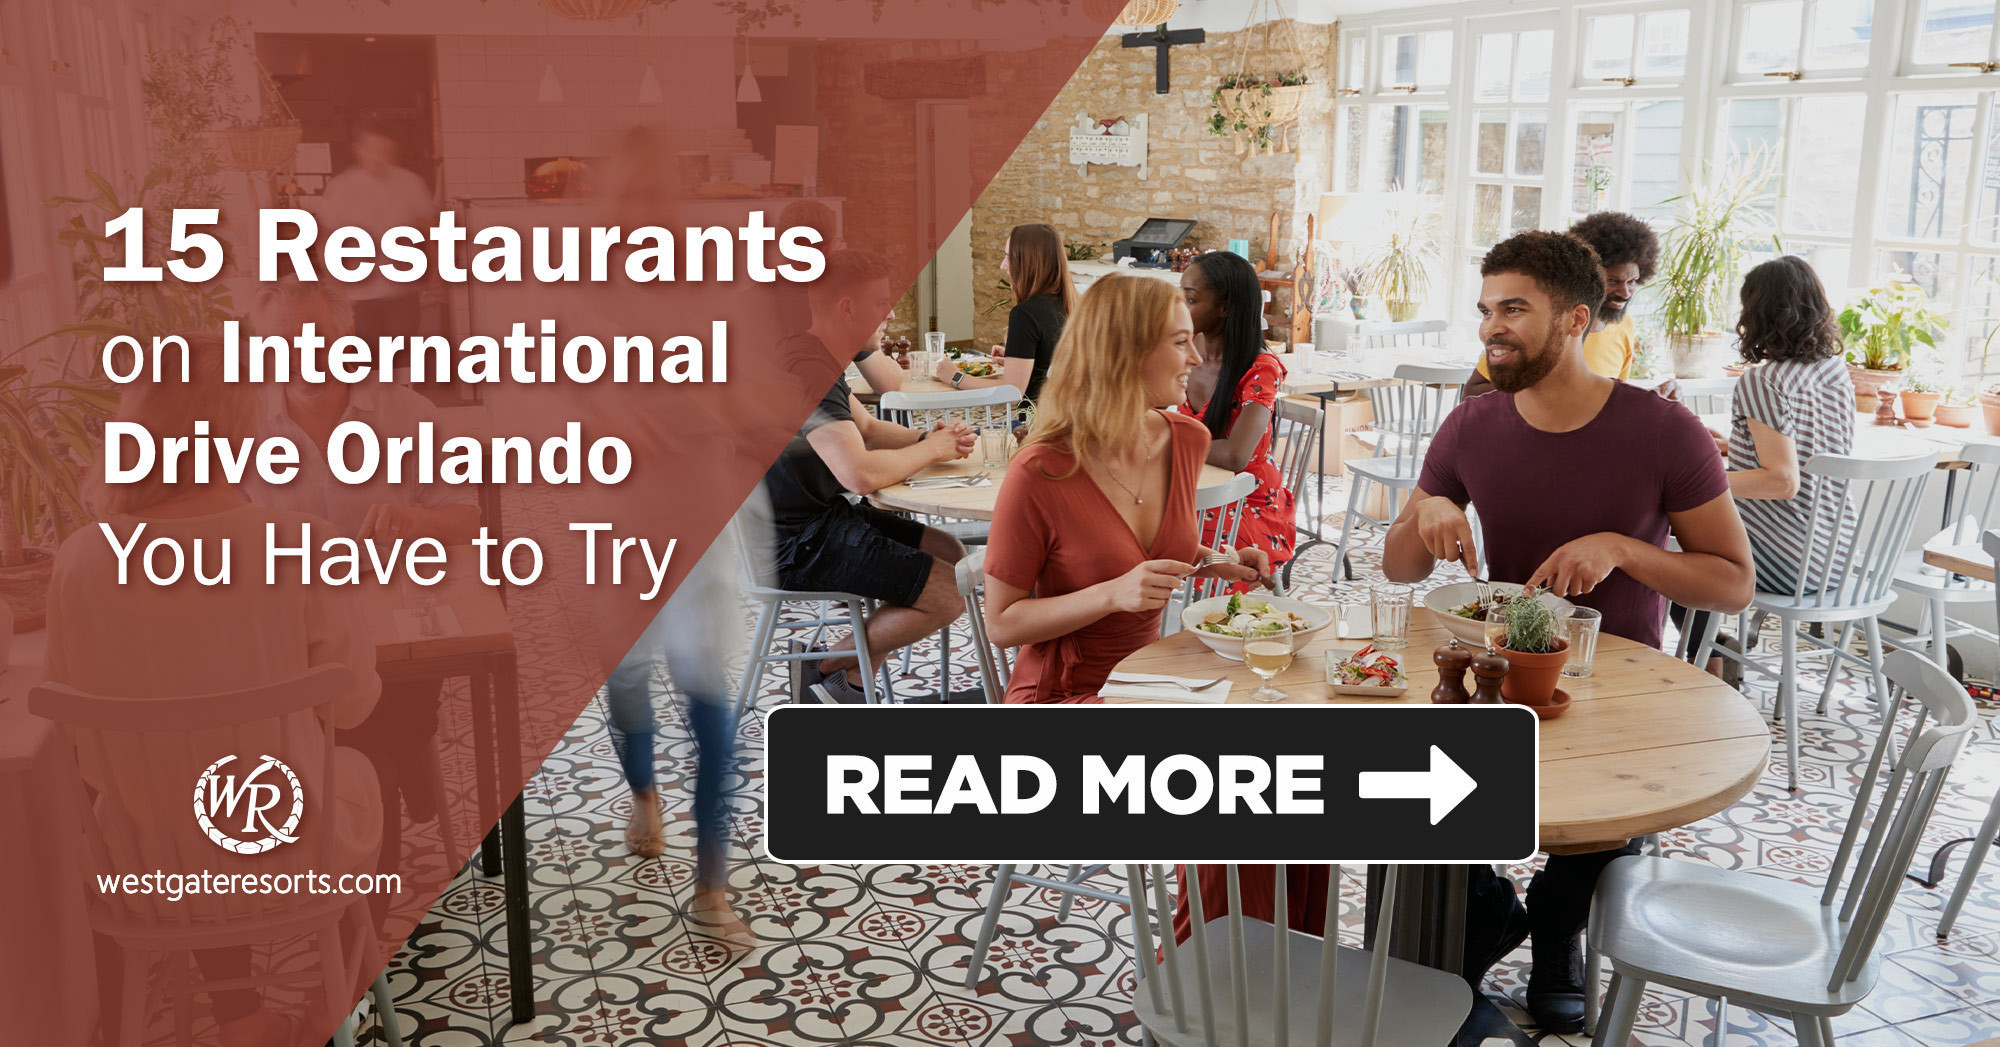 15 Restaurants on International Drive Orlando You Have to Try | I Drive Restaurant Guide